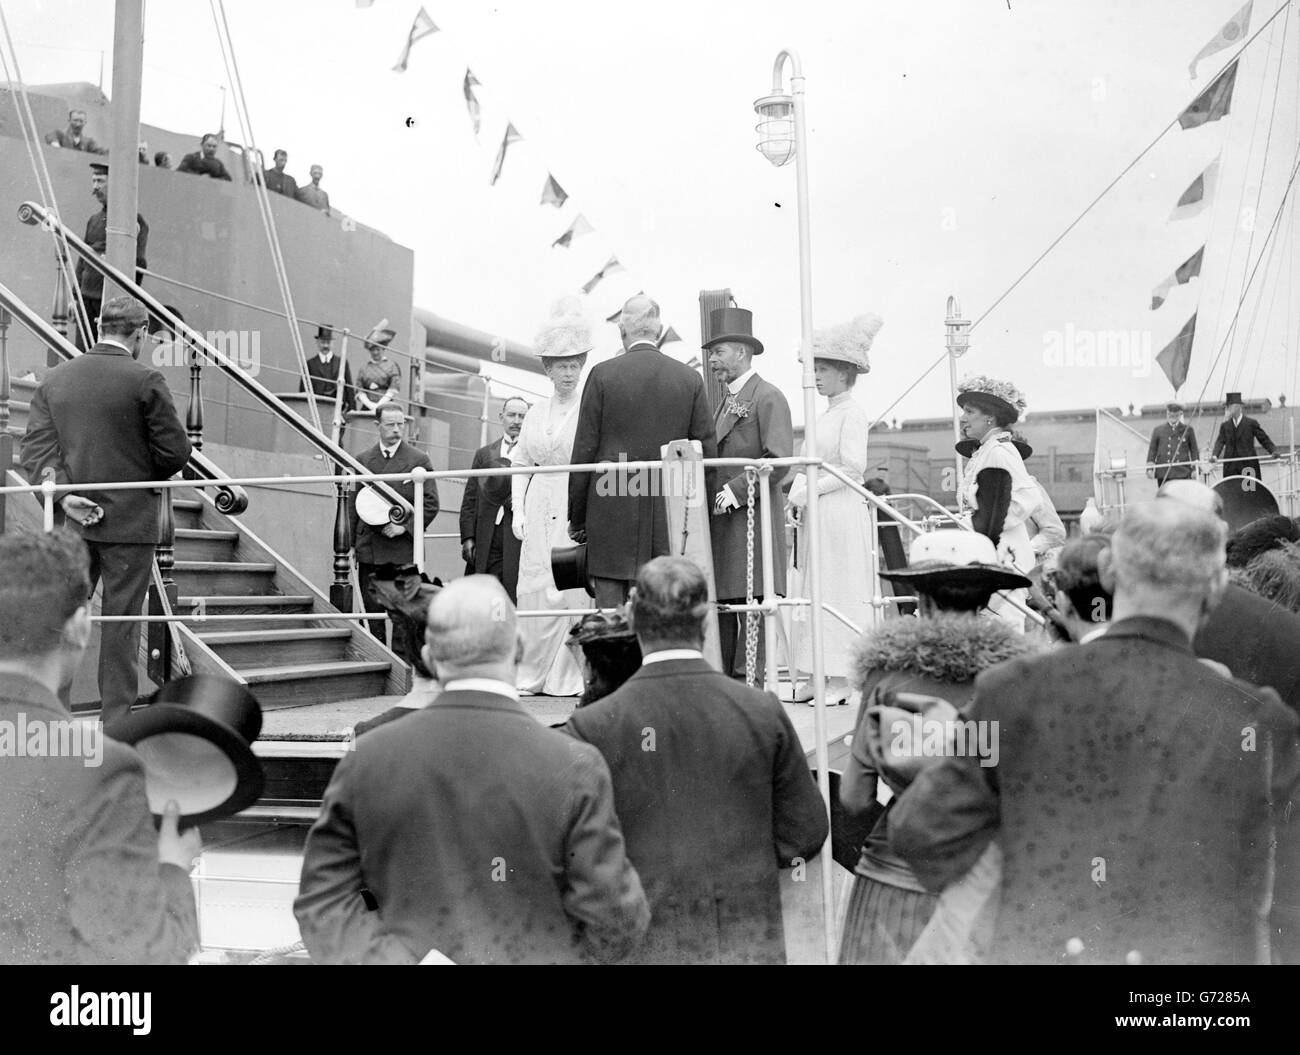 King George V and Queen Mary with Princess Mary board the HMS Benbow, an Iron Duke class battleship, during their visit to Scotland, 1914. Stock Photo